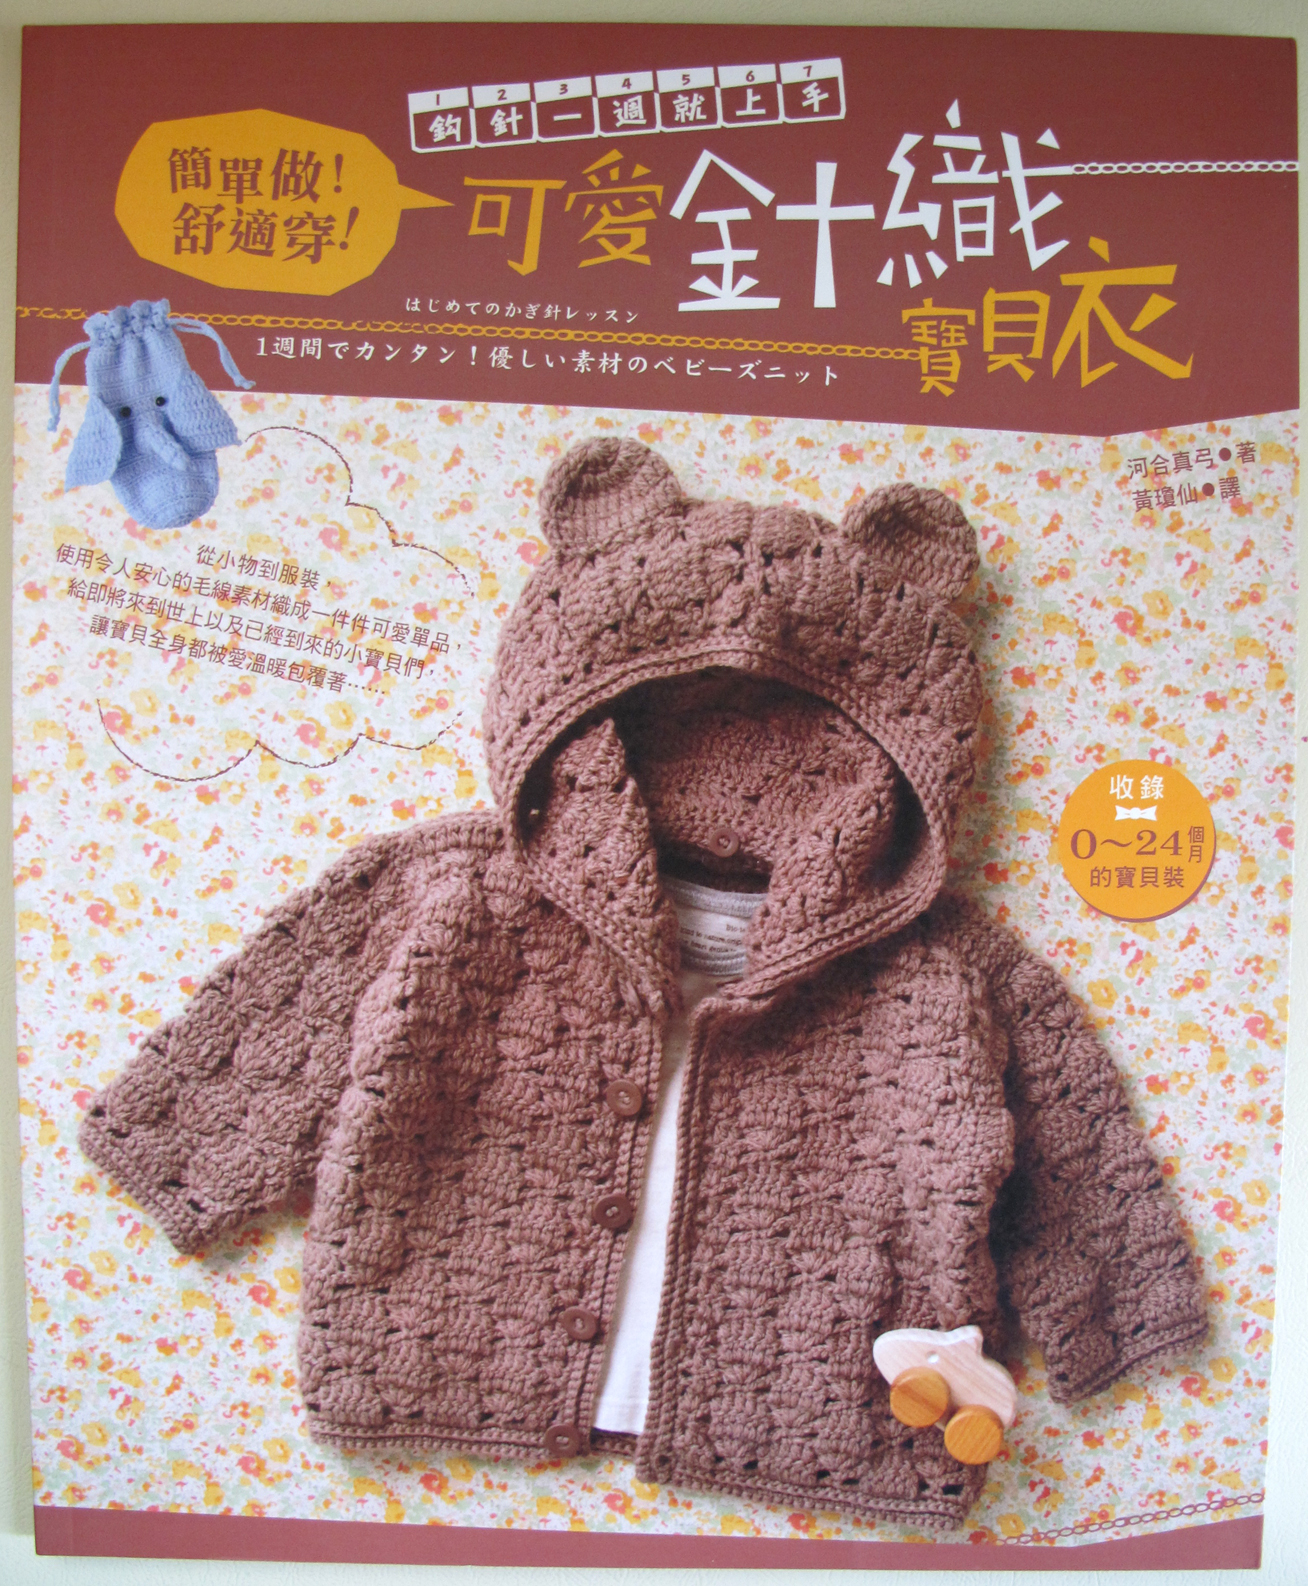 Crochet Books : ... .com: Kawaii One Week Baby Crochet Book - Japanese Crochet Book